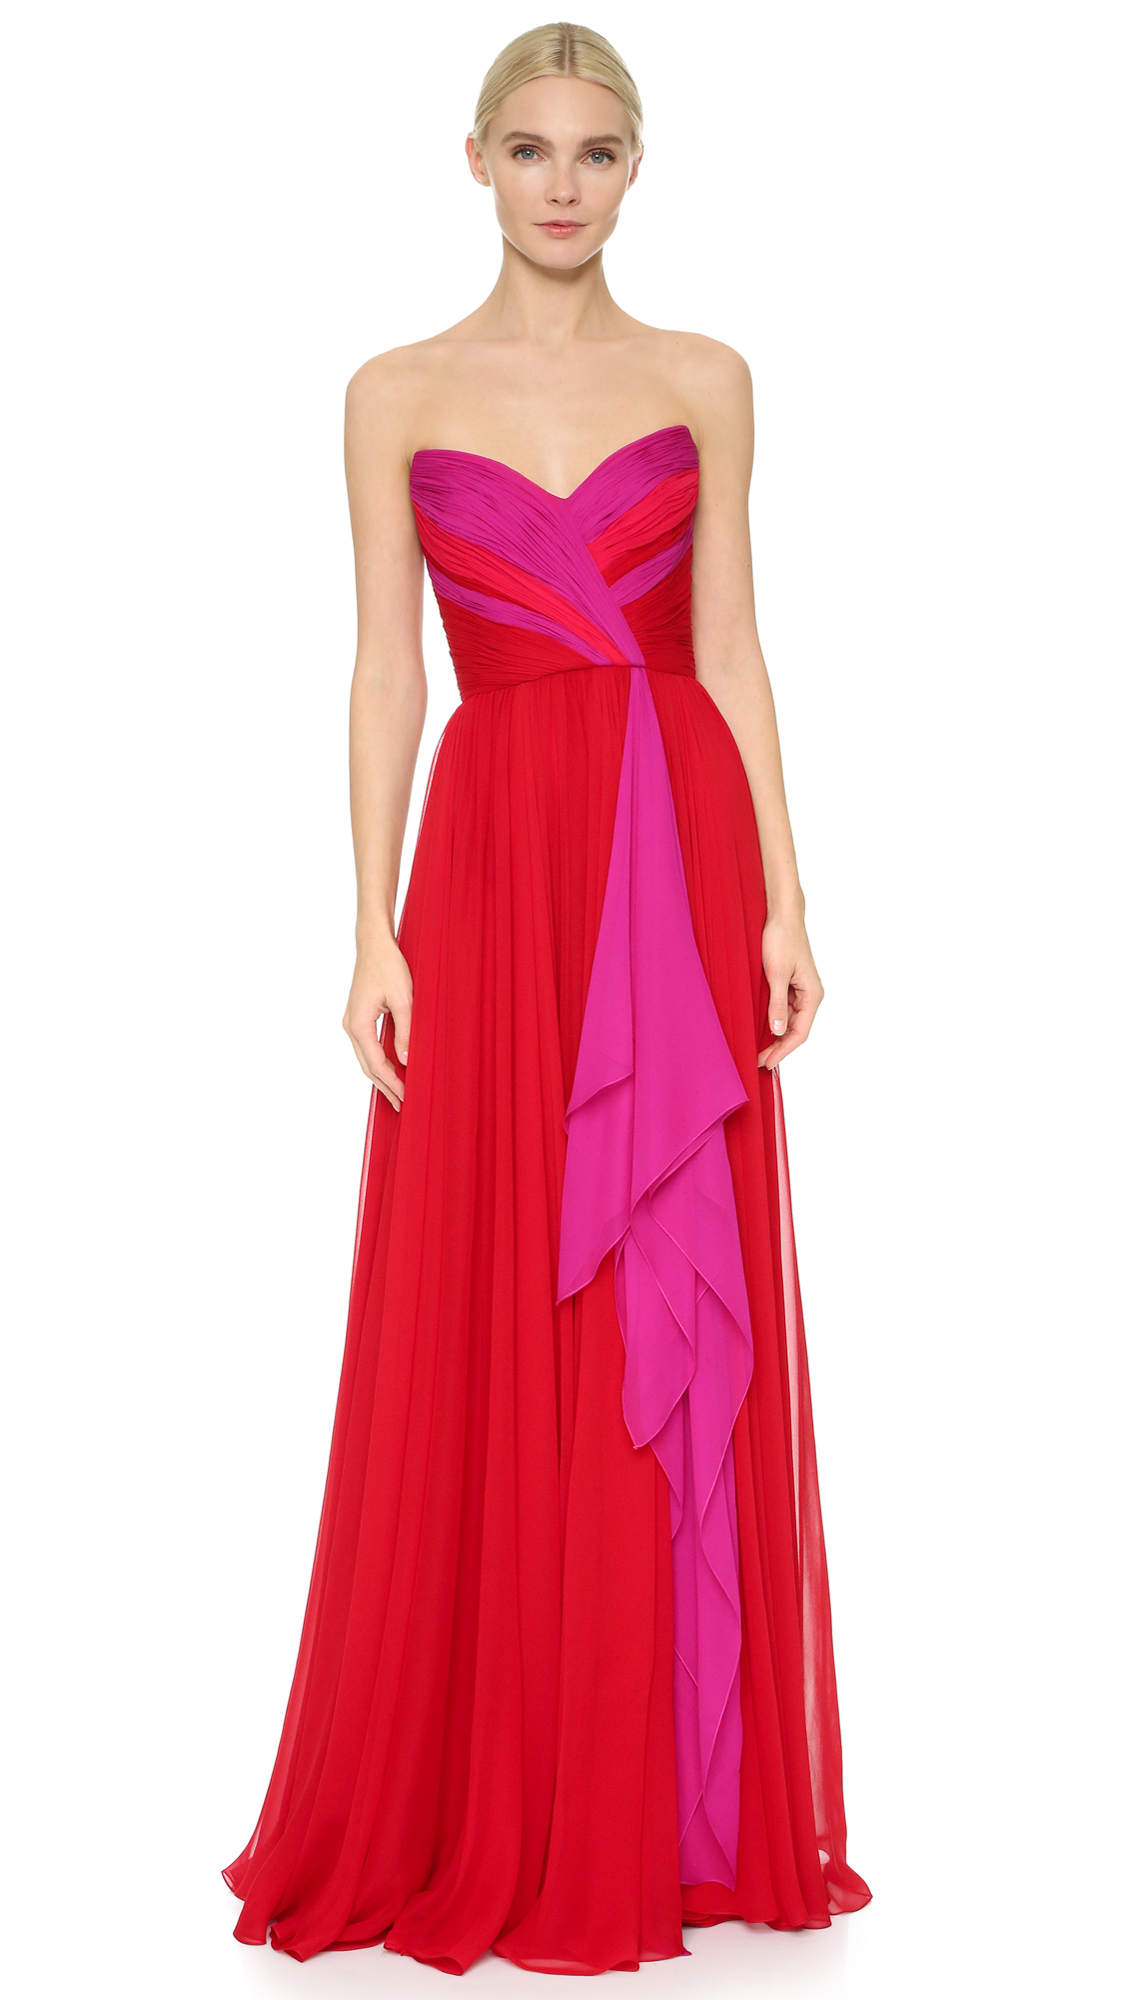 Lyst - Reem Acra Strapless Chiffon Gown in Pink